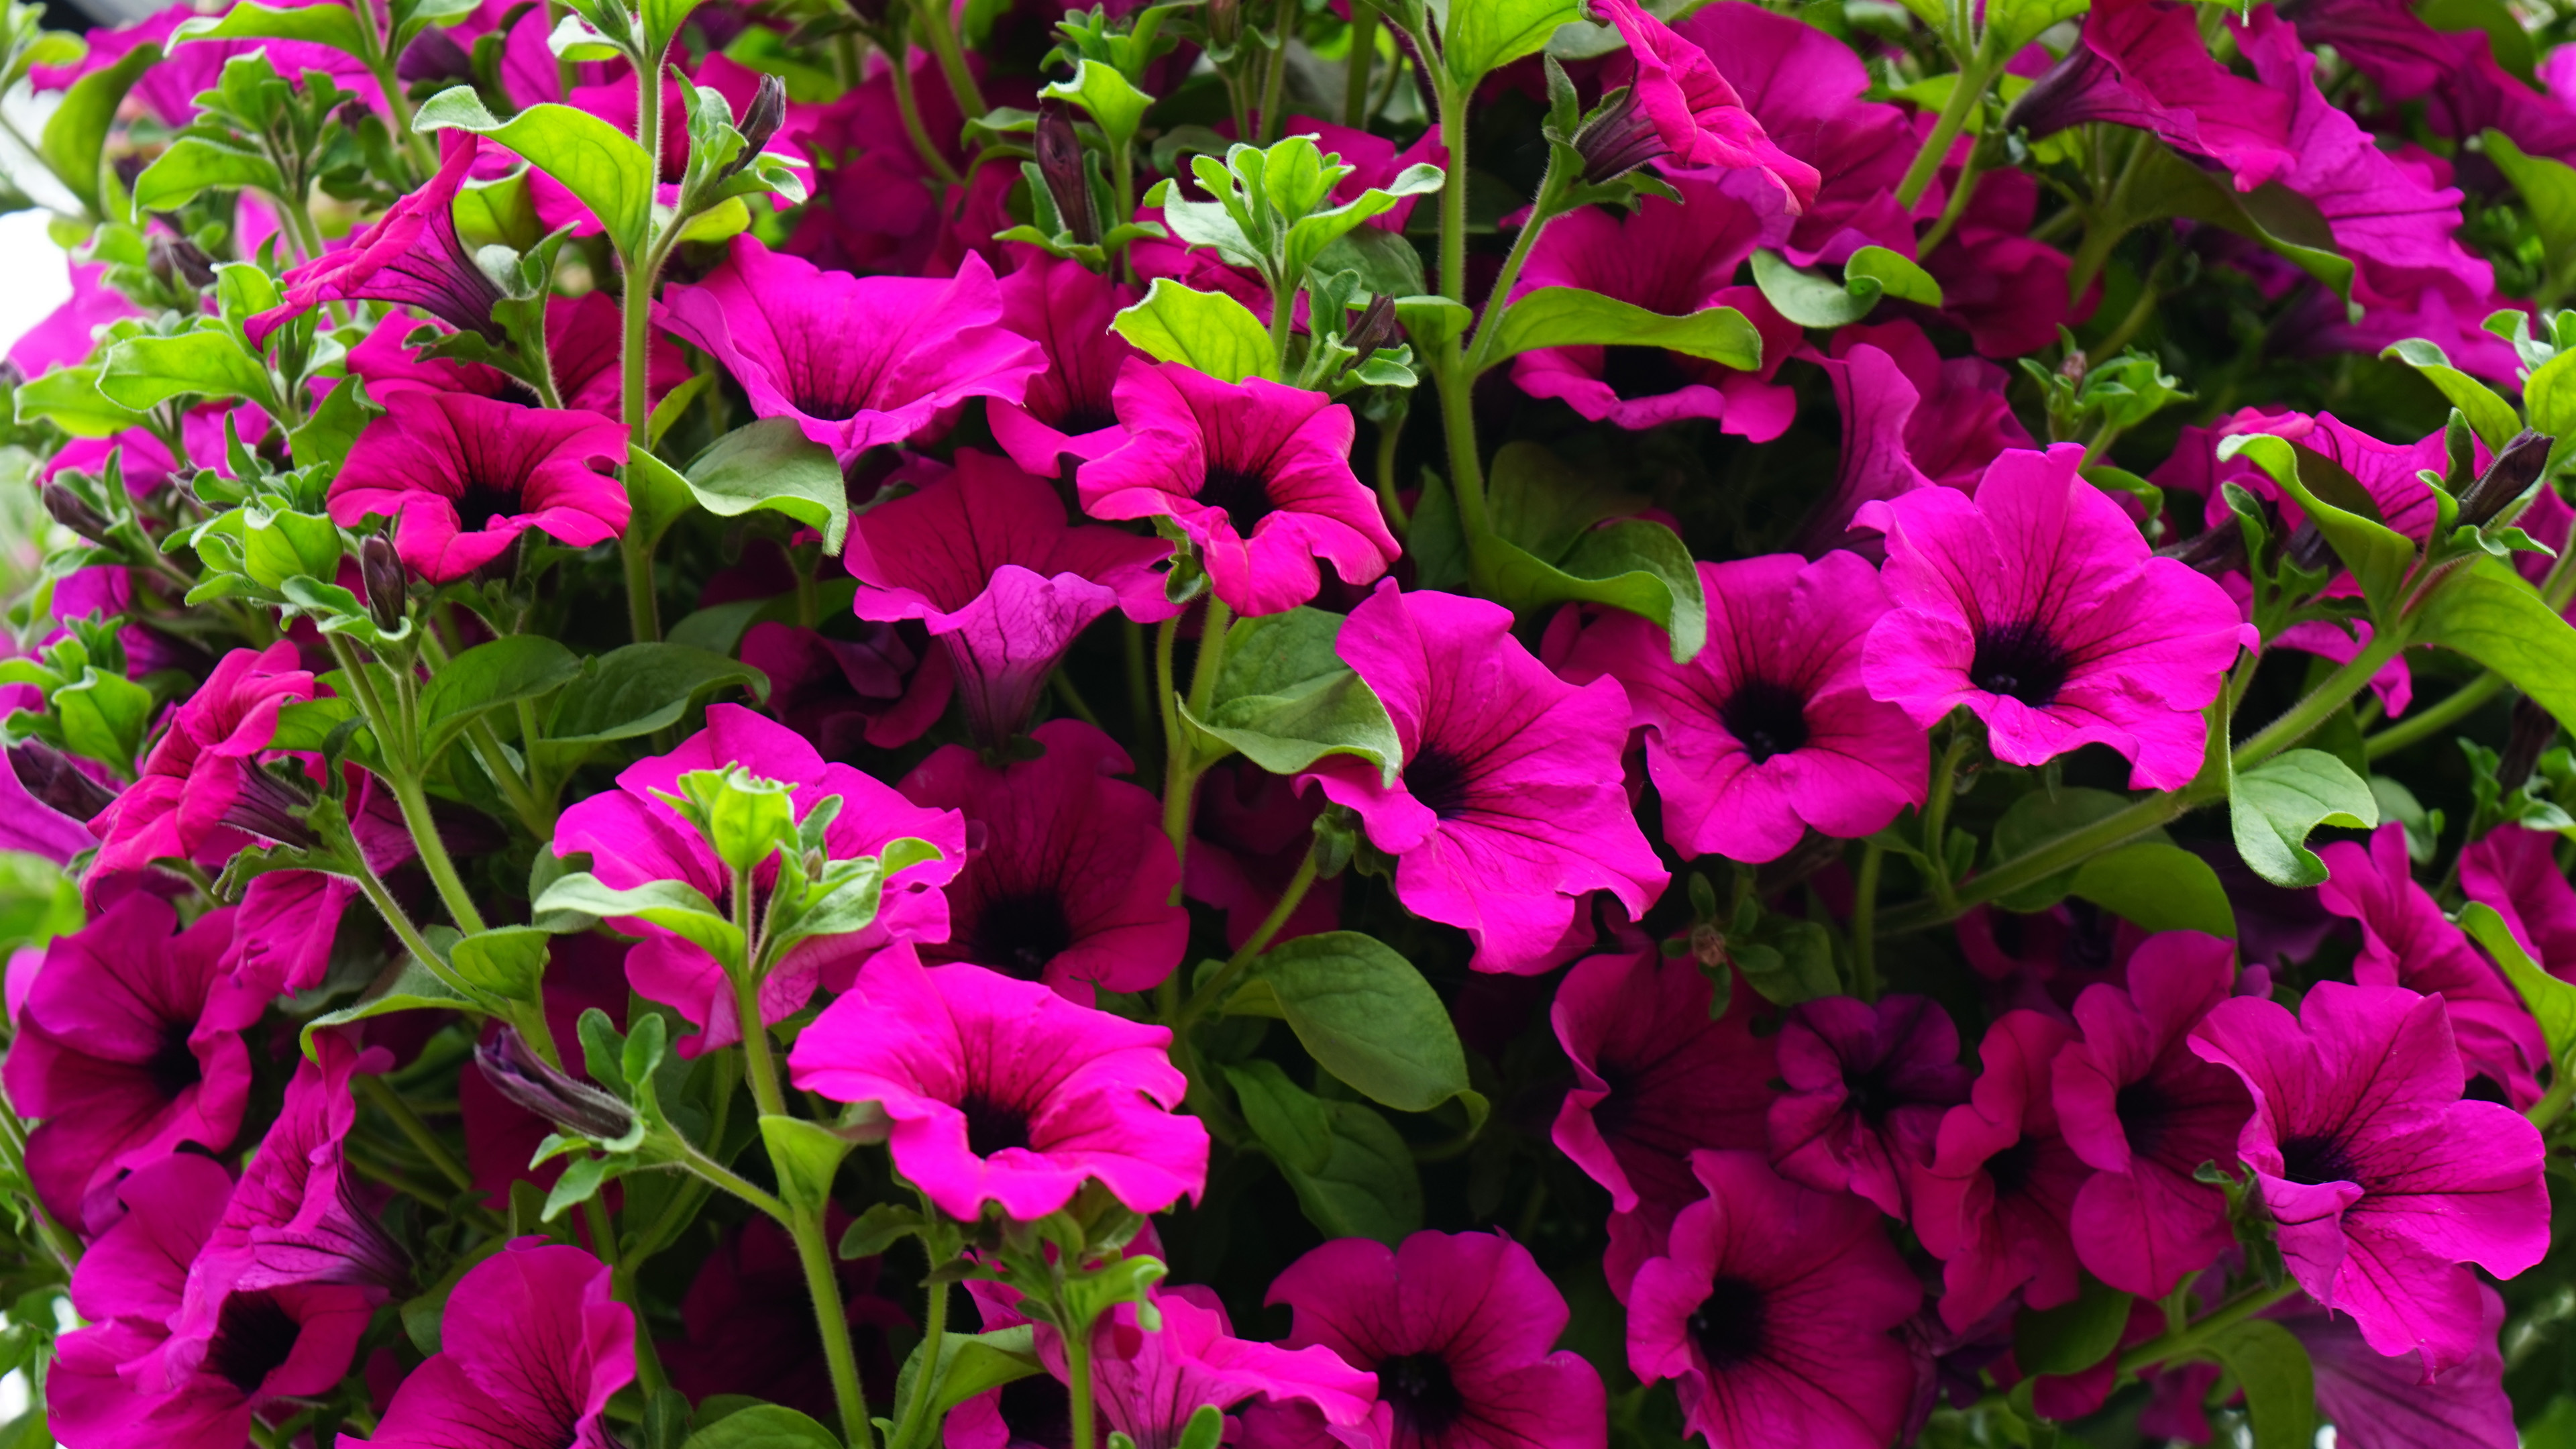 Plant Wallpaper Iphone Petunia Color Bunina Dark Pink Flowers Green Leaves Annual